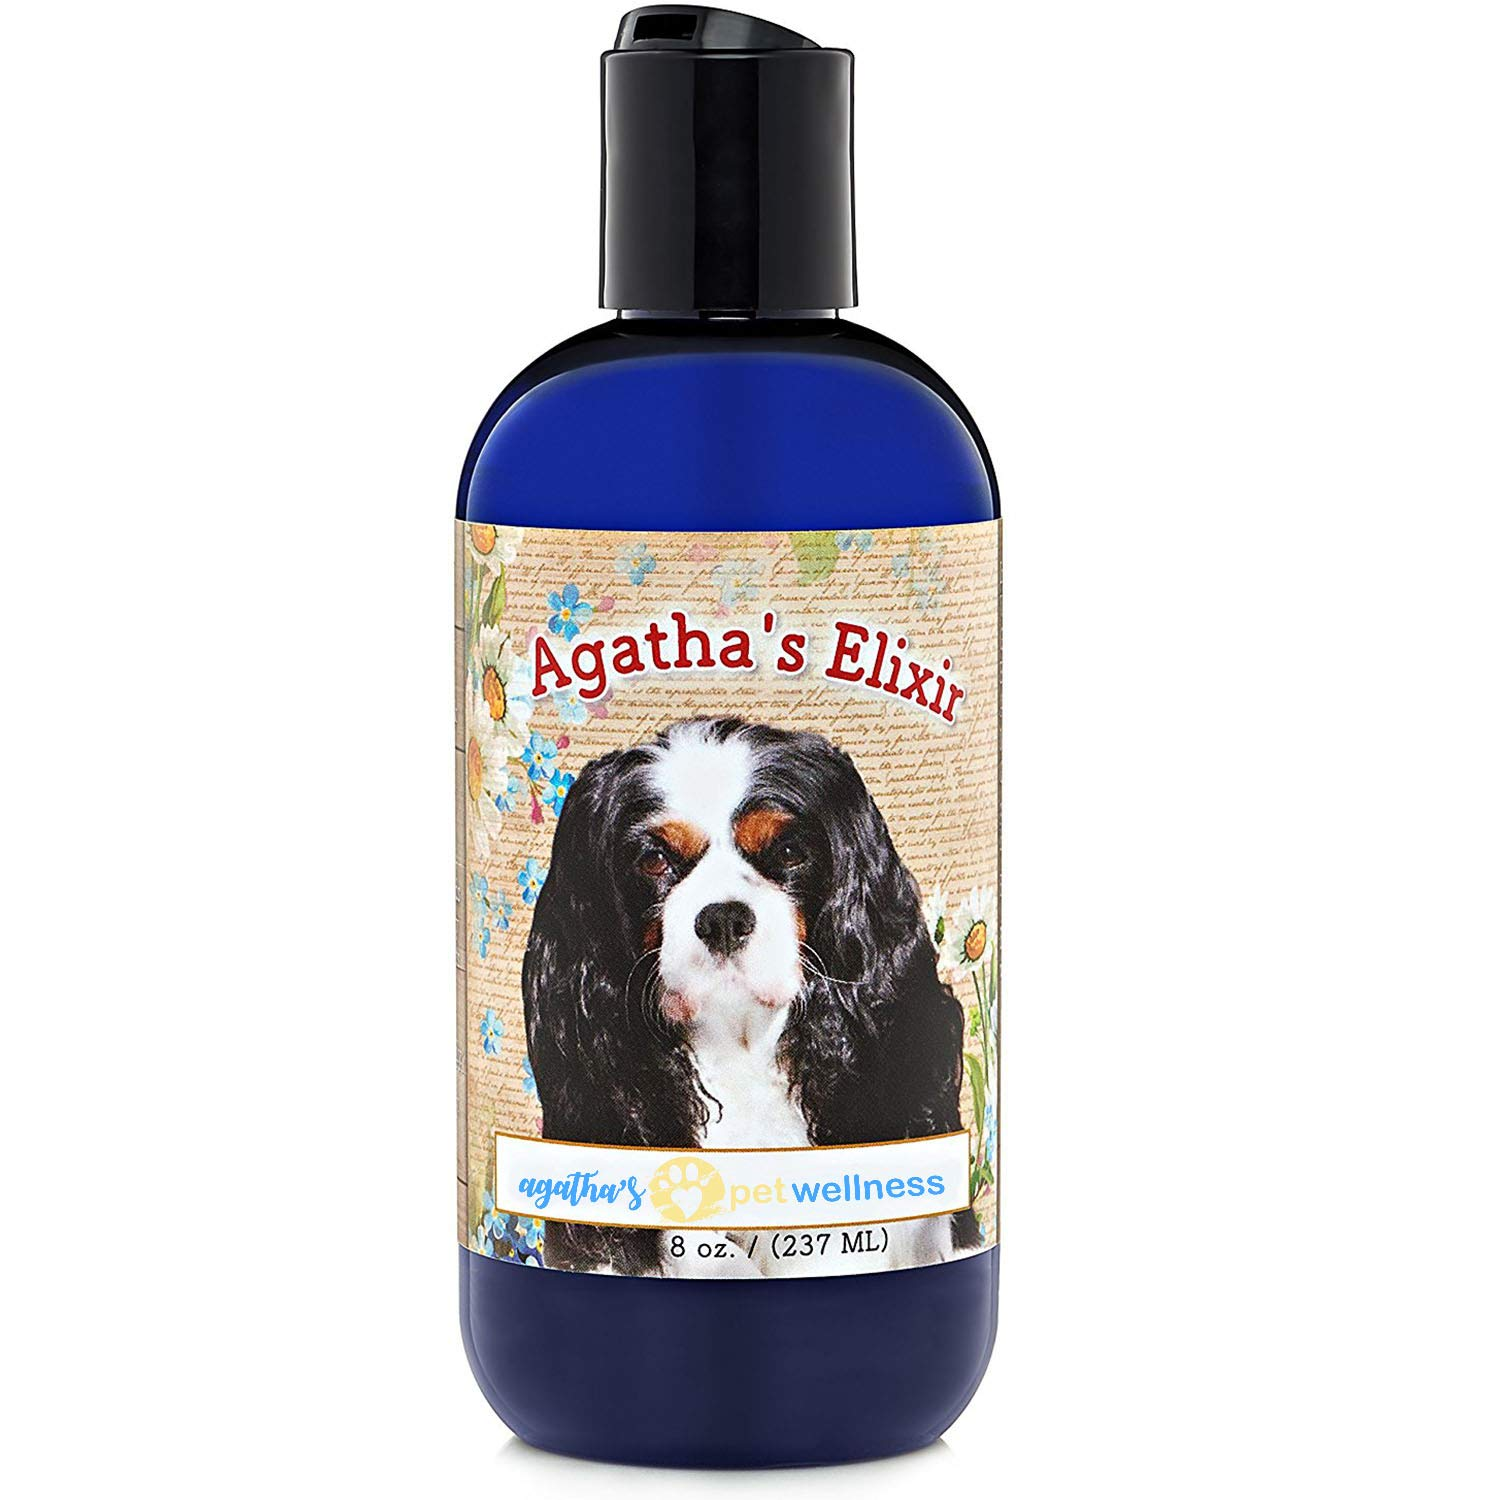 Agatha's Elixir Prebiotics for Dogs ● Appetite Stimulant for Picky Eaters and Senior Pets ● Green Tea & Milk Thistle Boost Immune System, Liver Detoxifier by Agatha's Pet Wellness